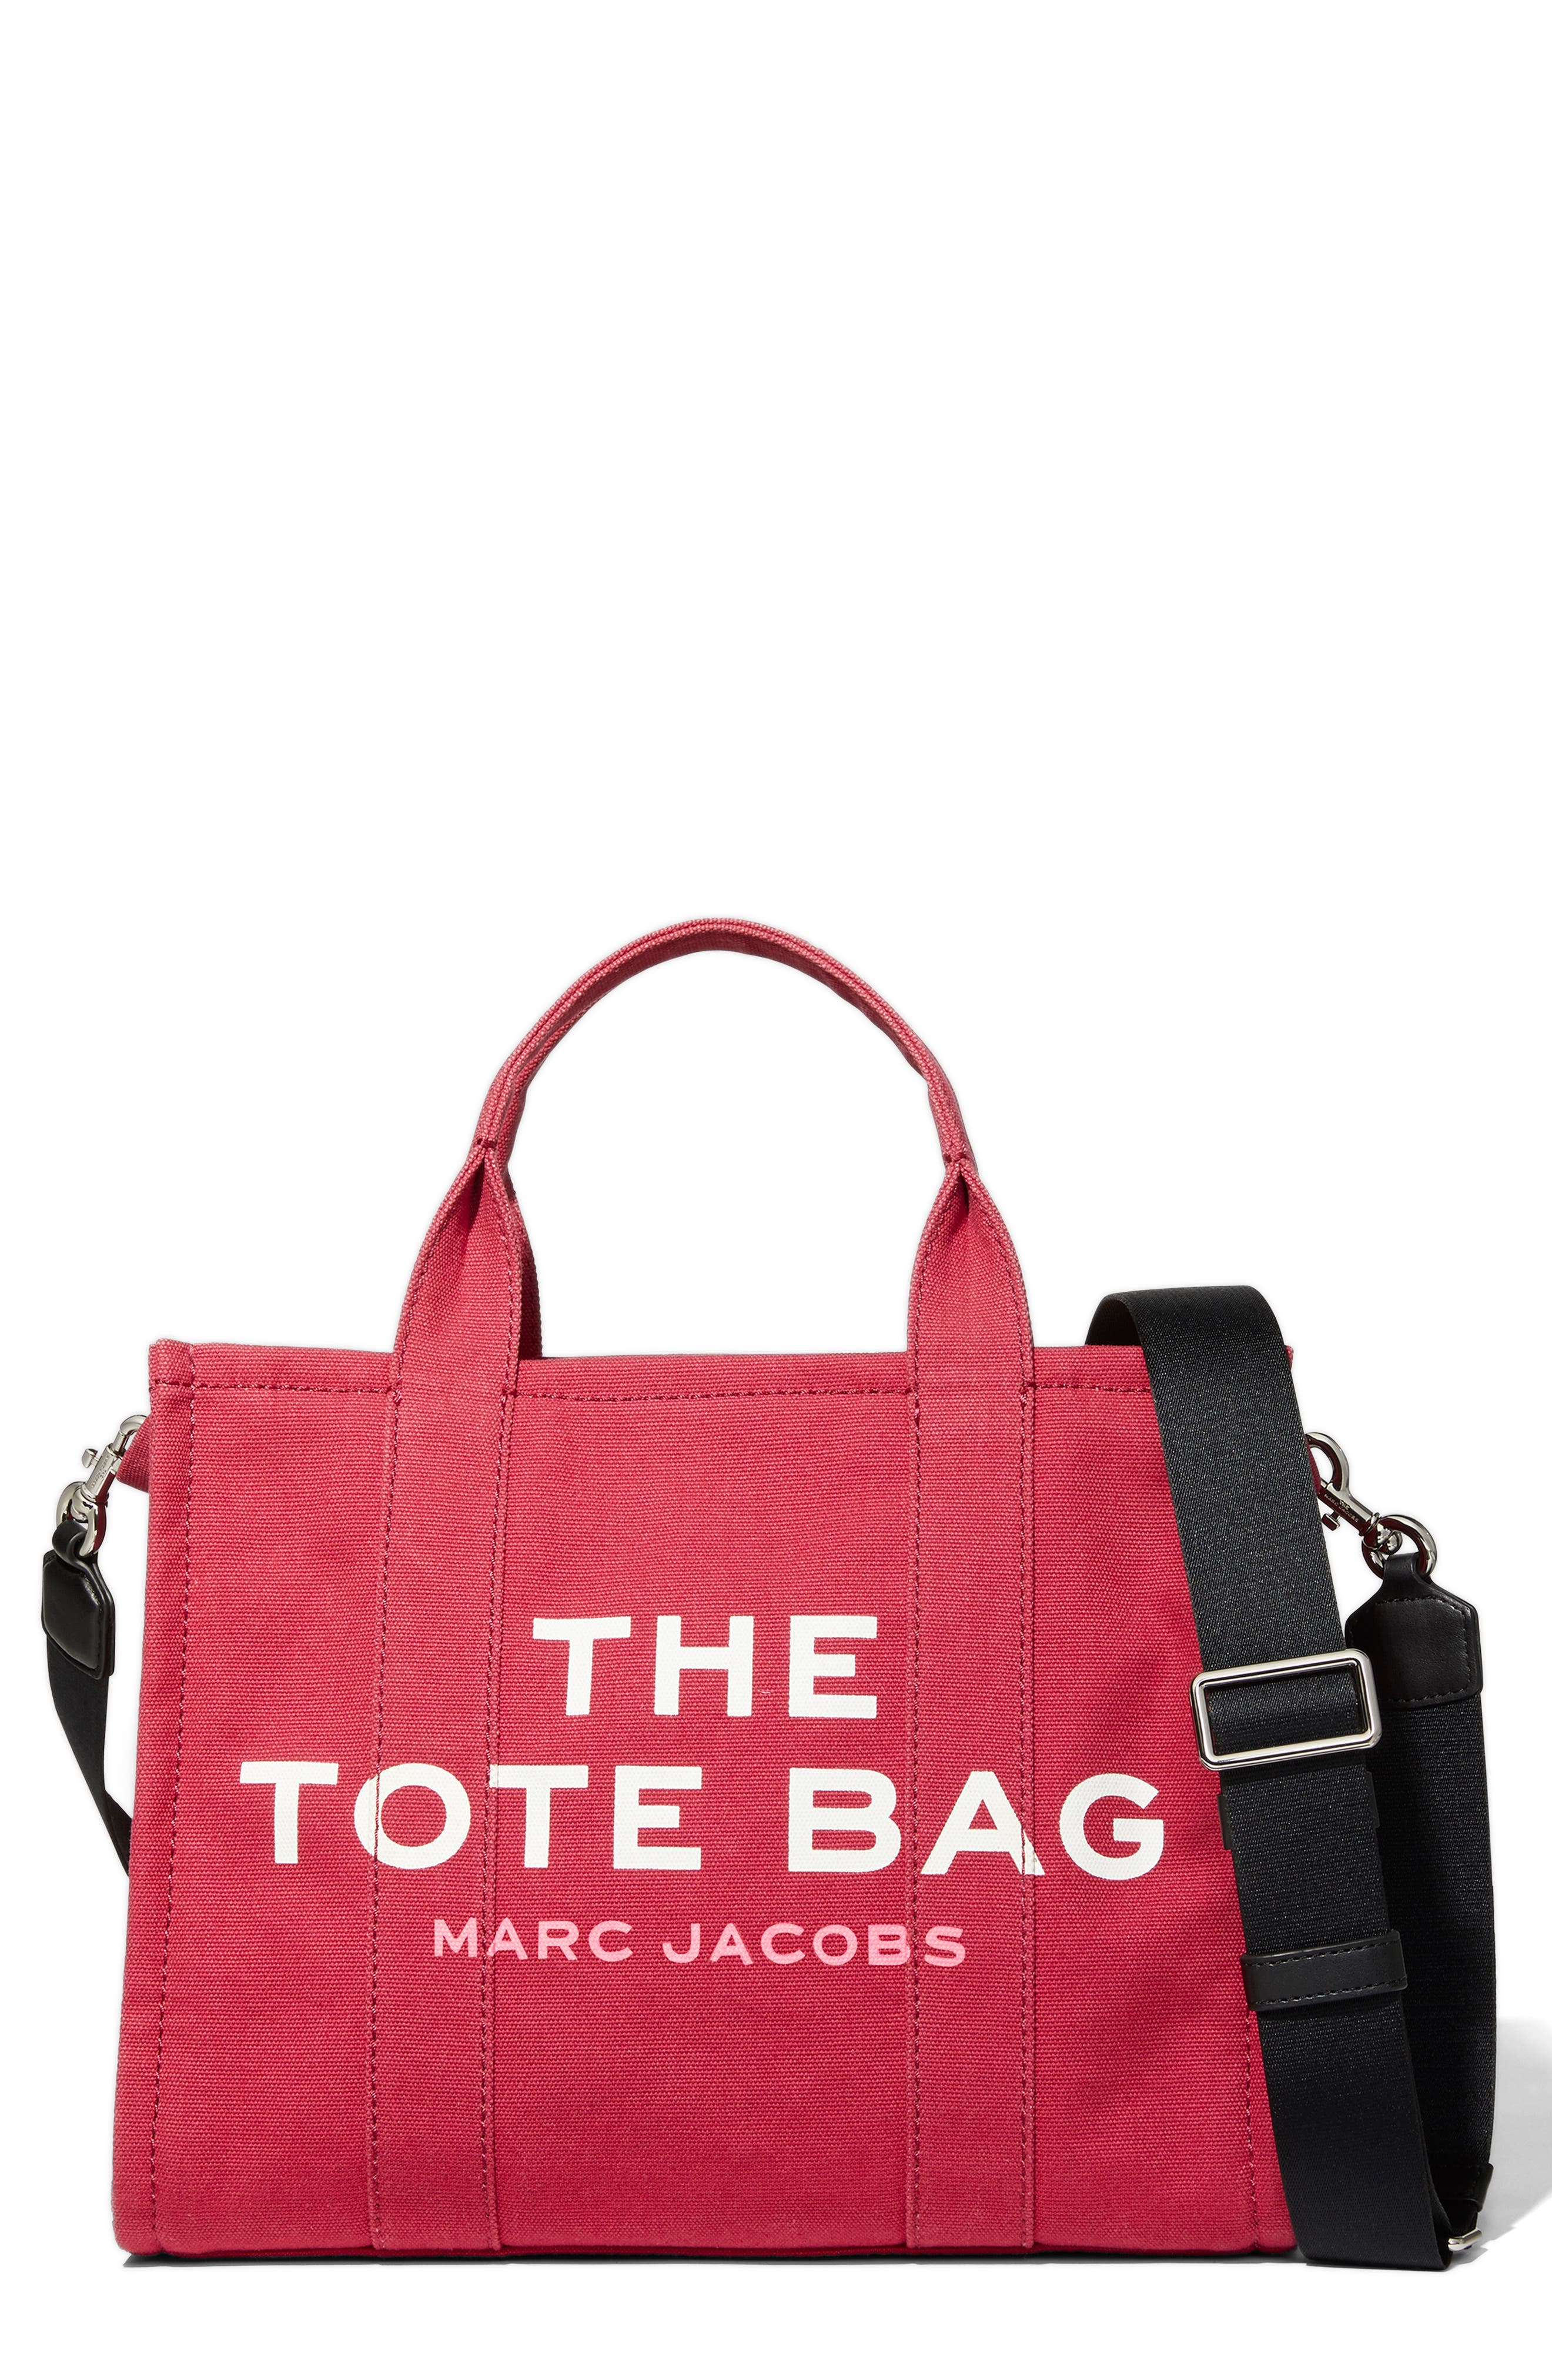 tote bags for women